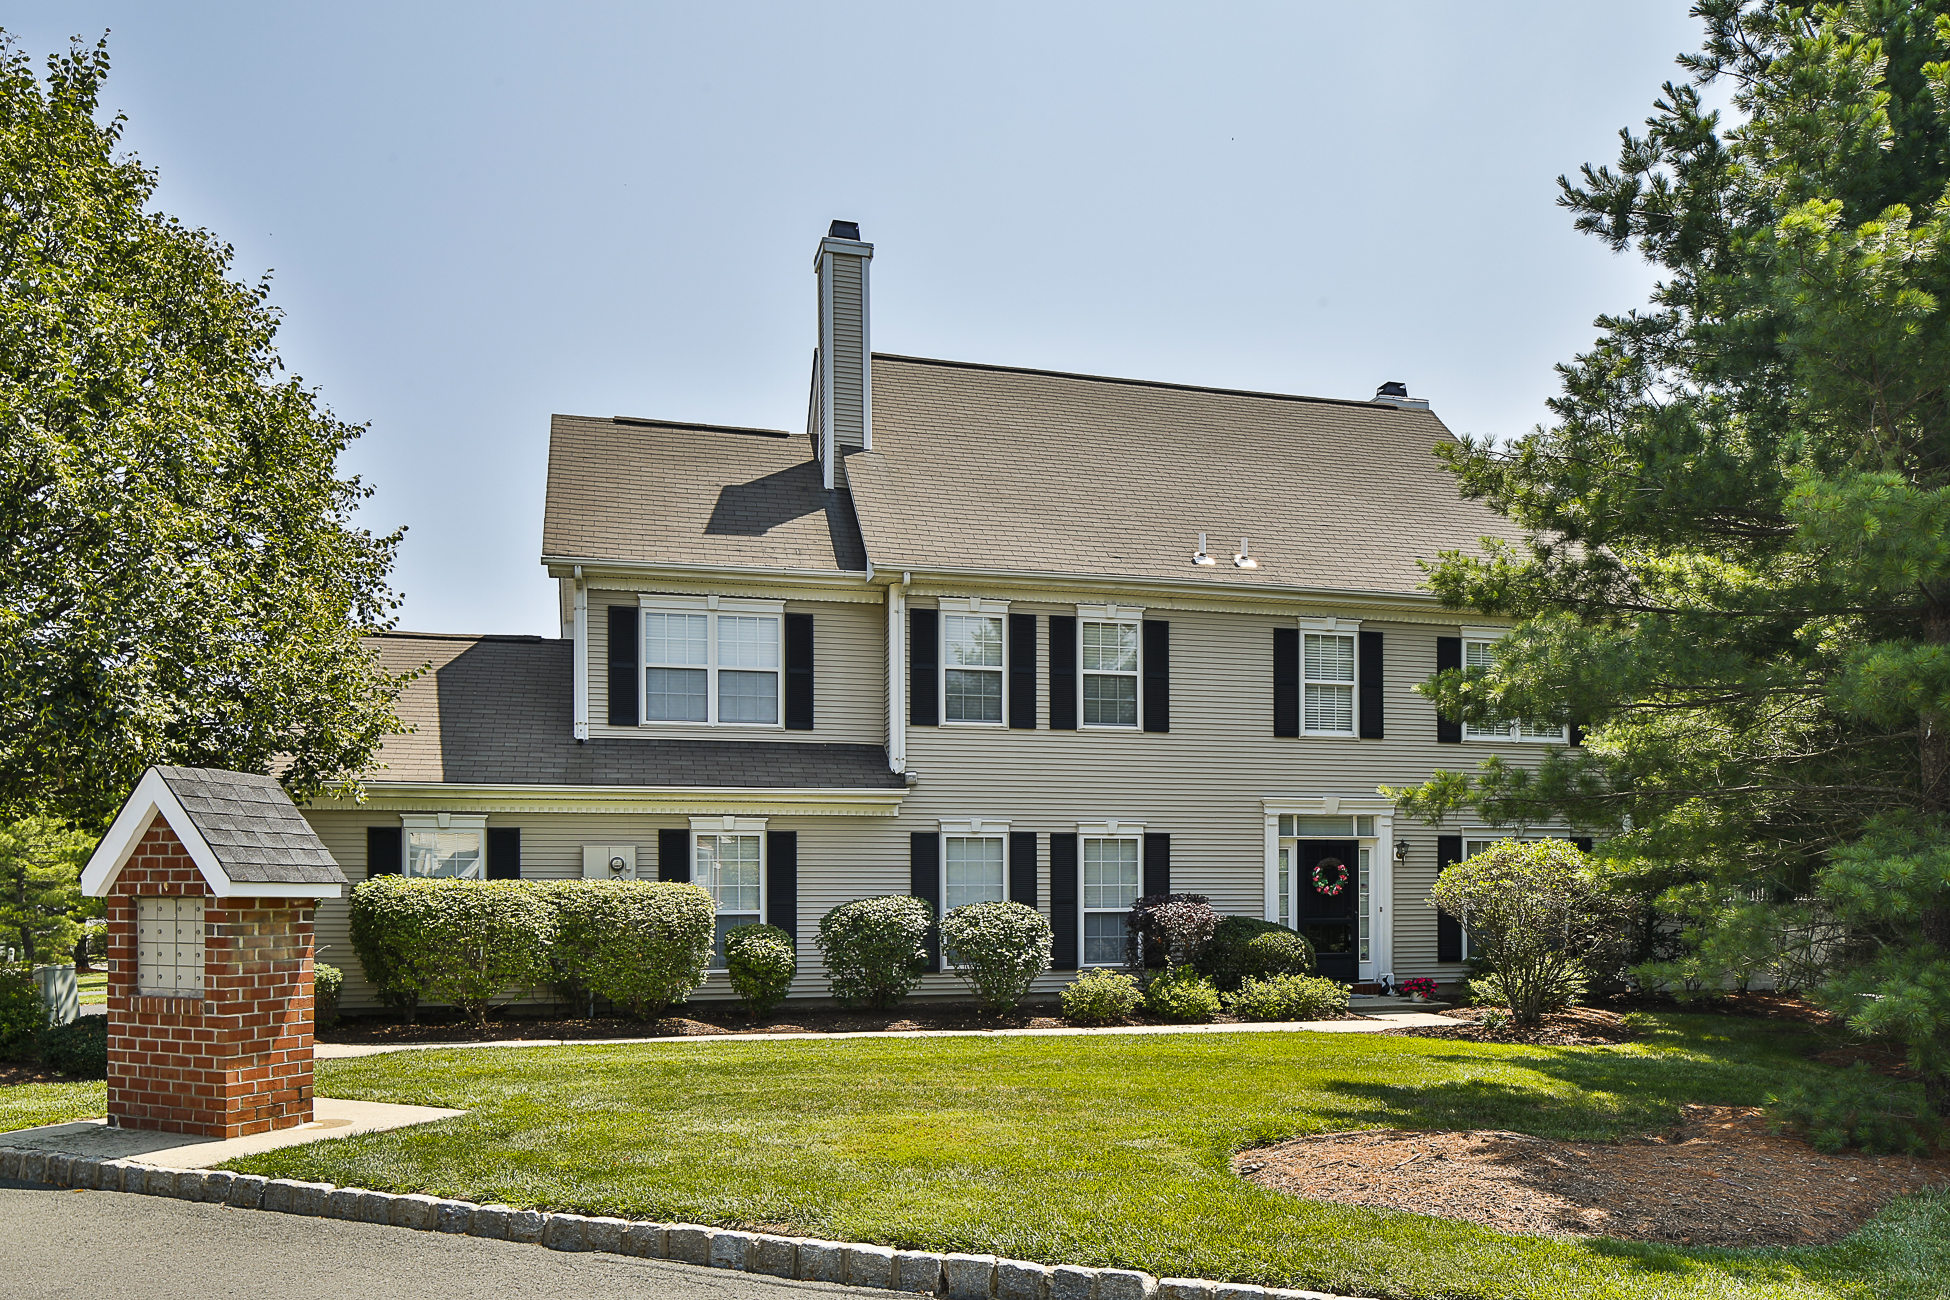 Property For Sale at Well Maintained Home Offers Gracious Lifestyle - Hopewell Township